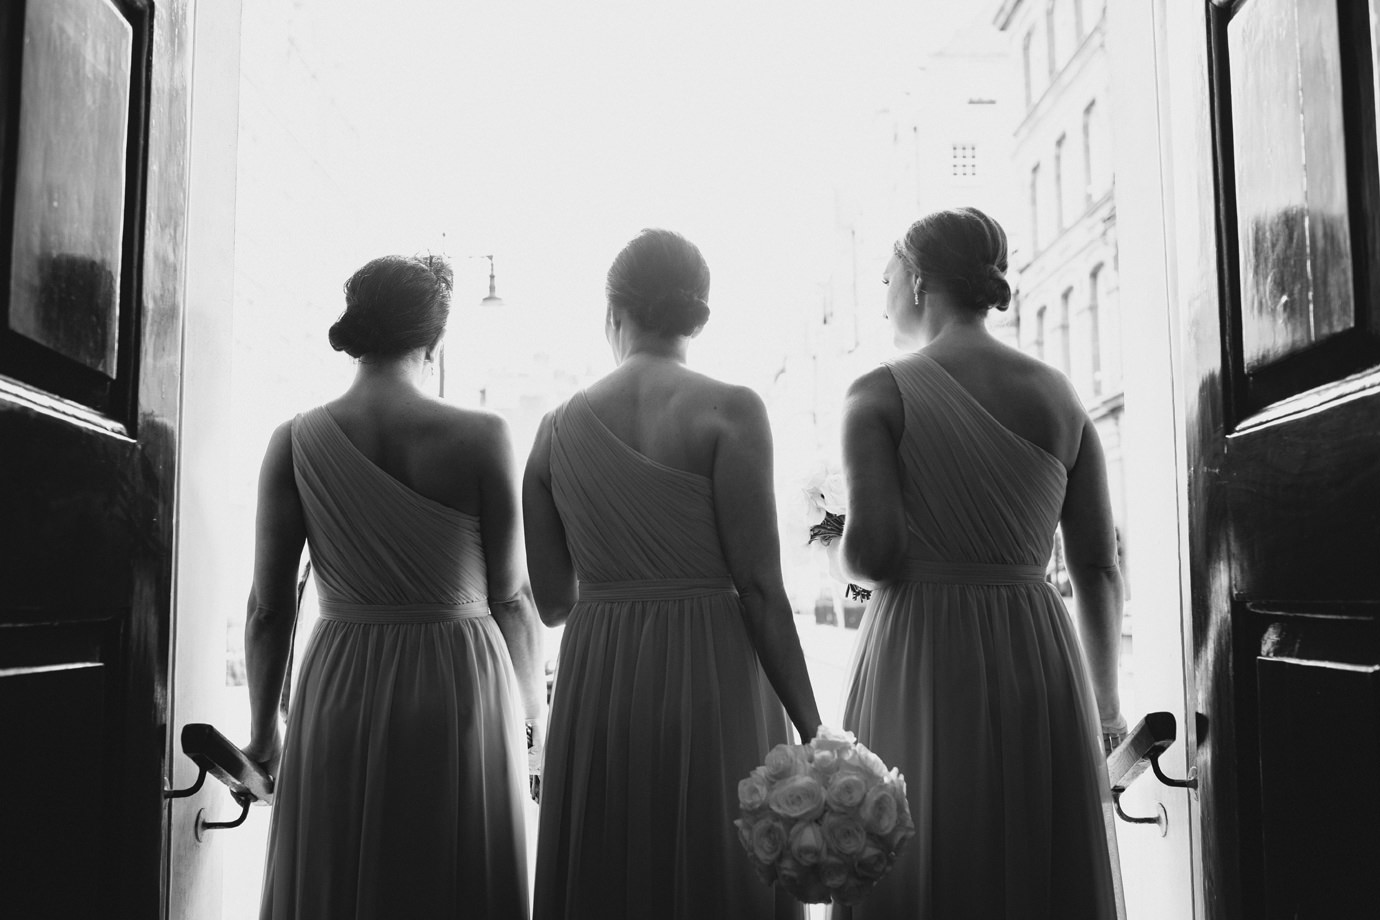 Waiting bridesmaids, Mayfair London